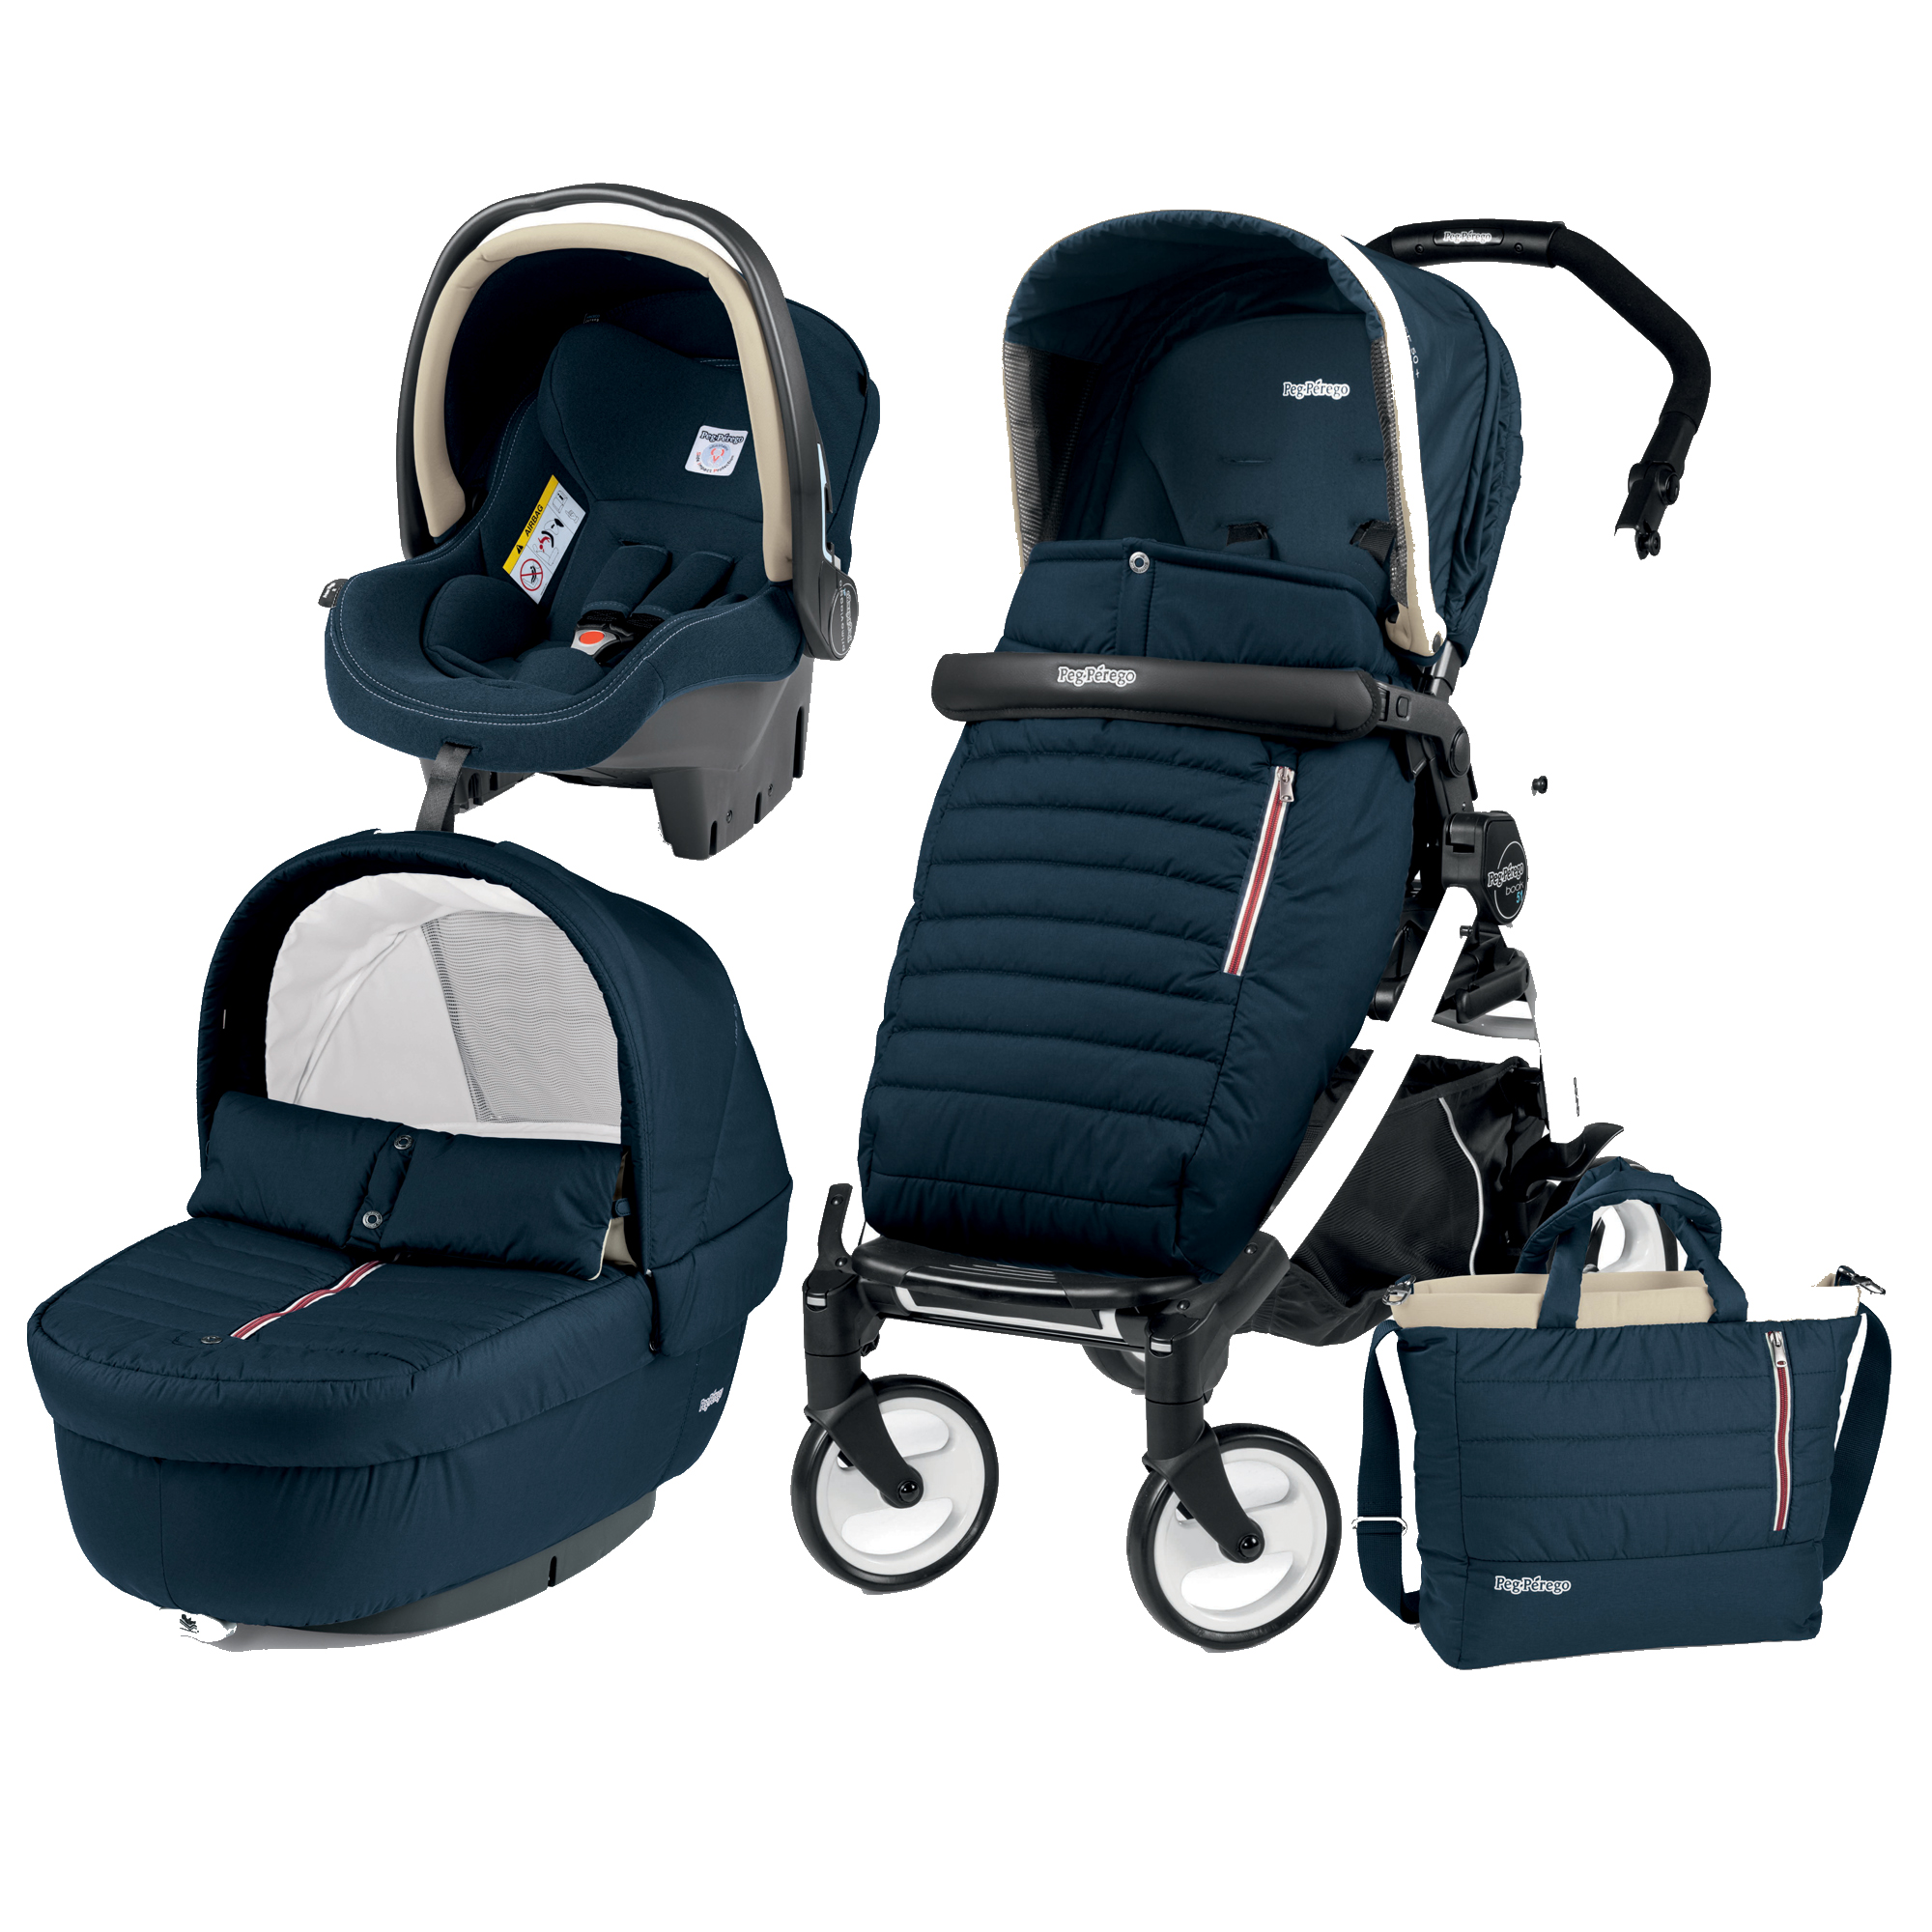 Carucior 3 In 1, Peg Perego, Book Plus 51, Black&White, Breeze